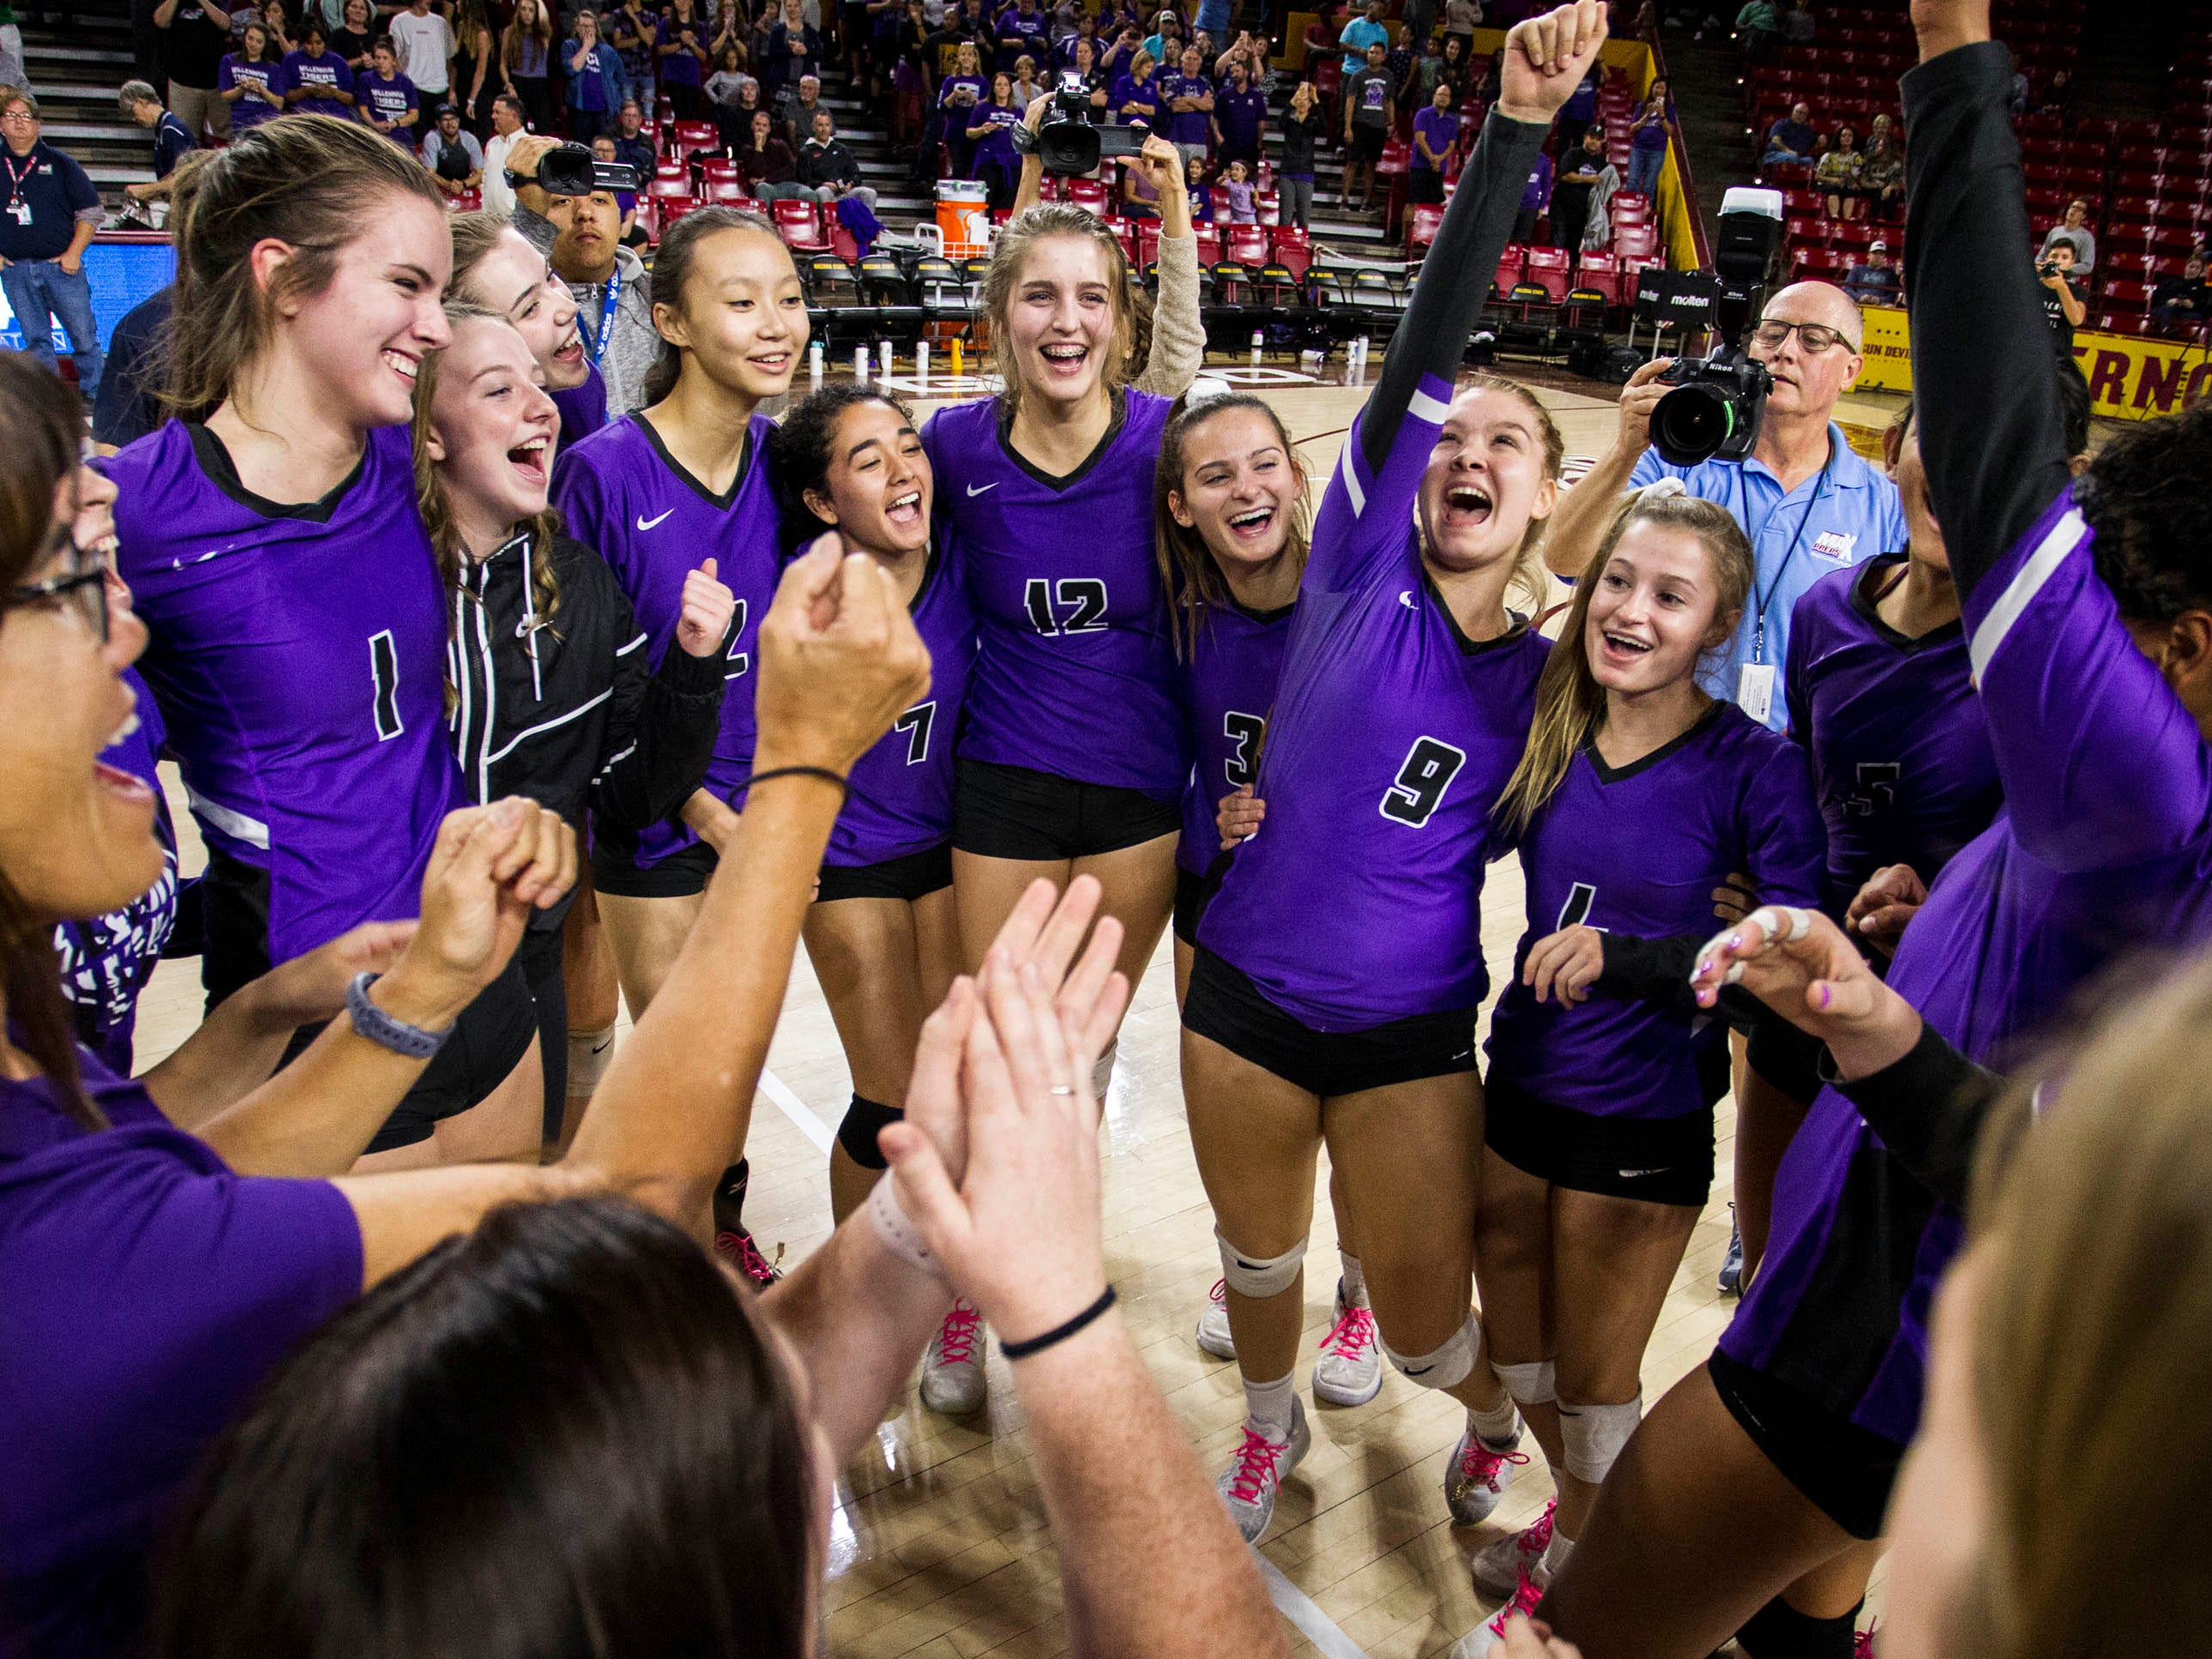 Millennium's players celebrate their three set 5A State Championship win over Sunnyslope in the girls 5A volleyball state championship at Wells Fargo Arena in Tempe, Wednesday, Nov. 7, 2018.